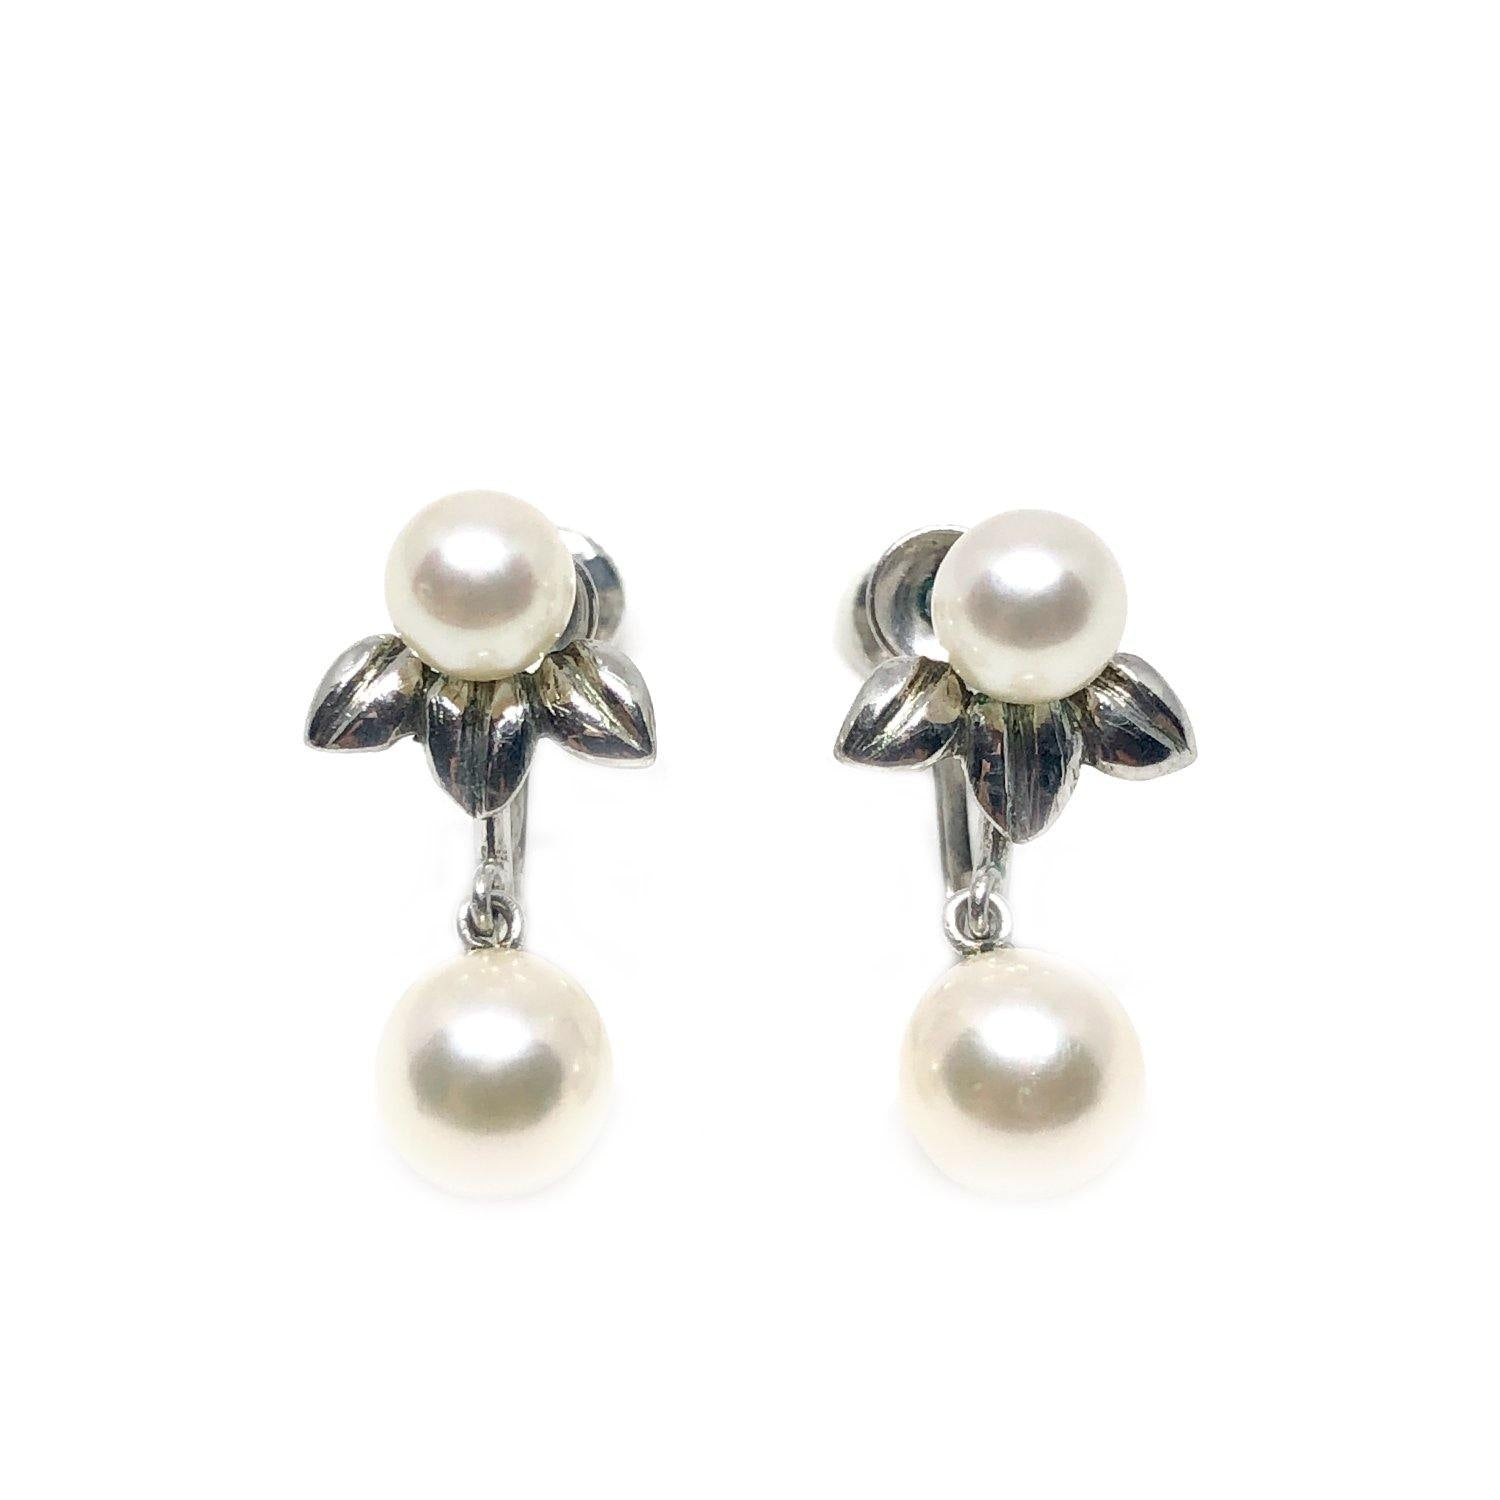 Leaf Fuji Pearl Designer Akoya Saltwater Cultured Pearl Screwback Earrings- Sterling Silver